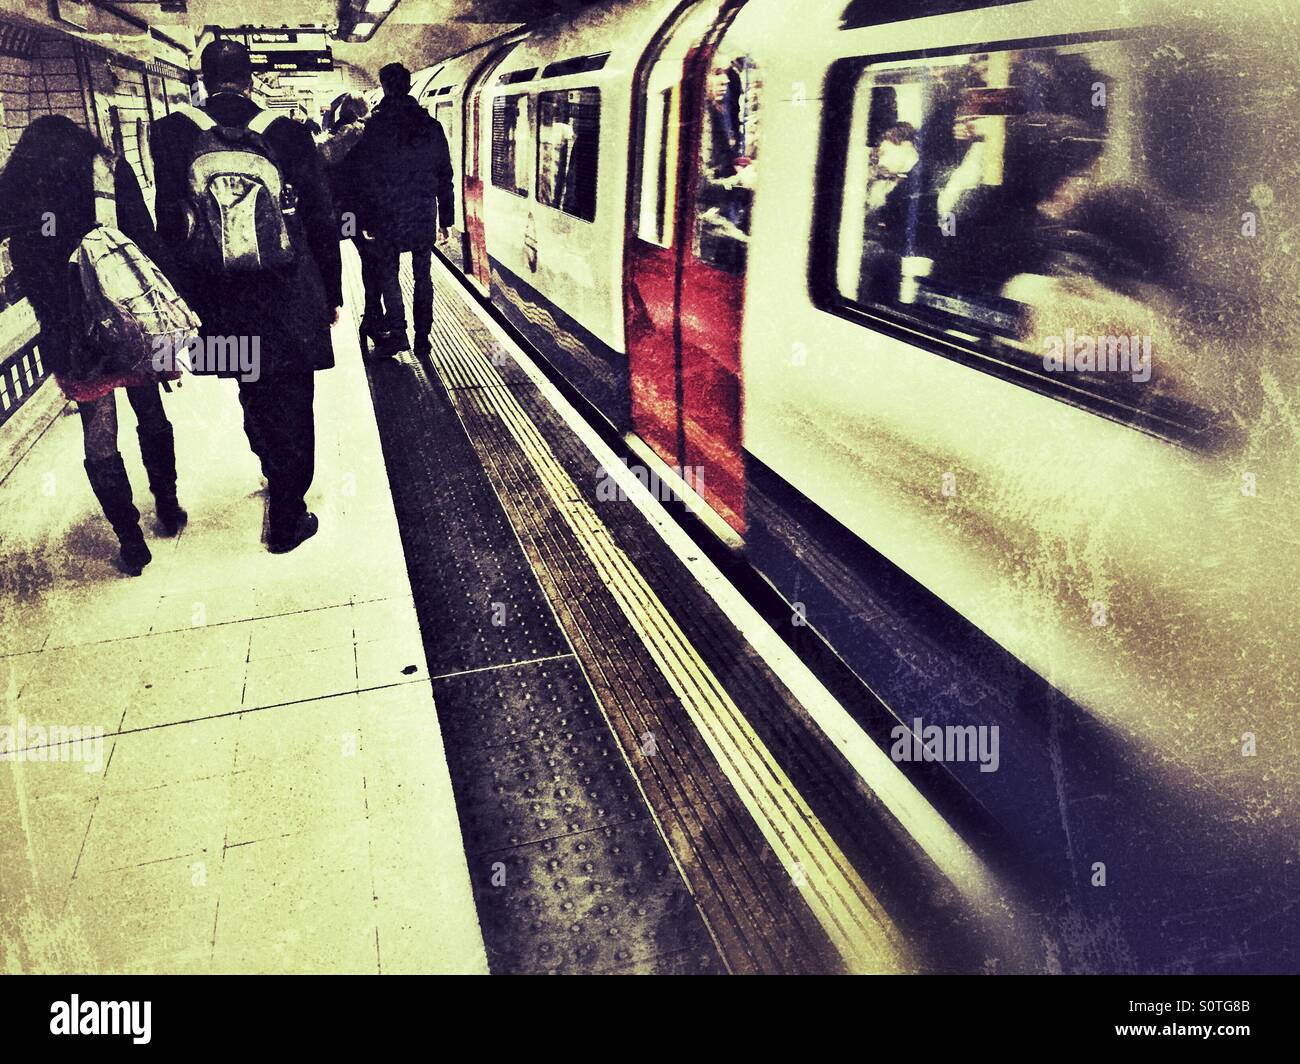 Commuters at Leicester Square tube station, London. - Stock Image